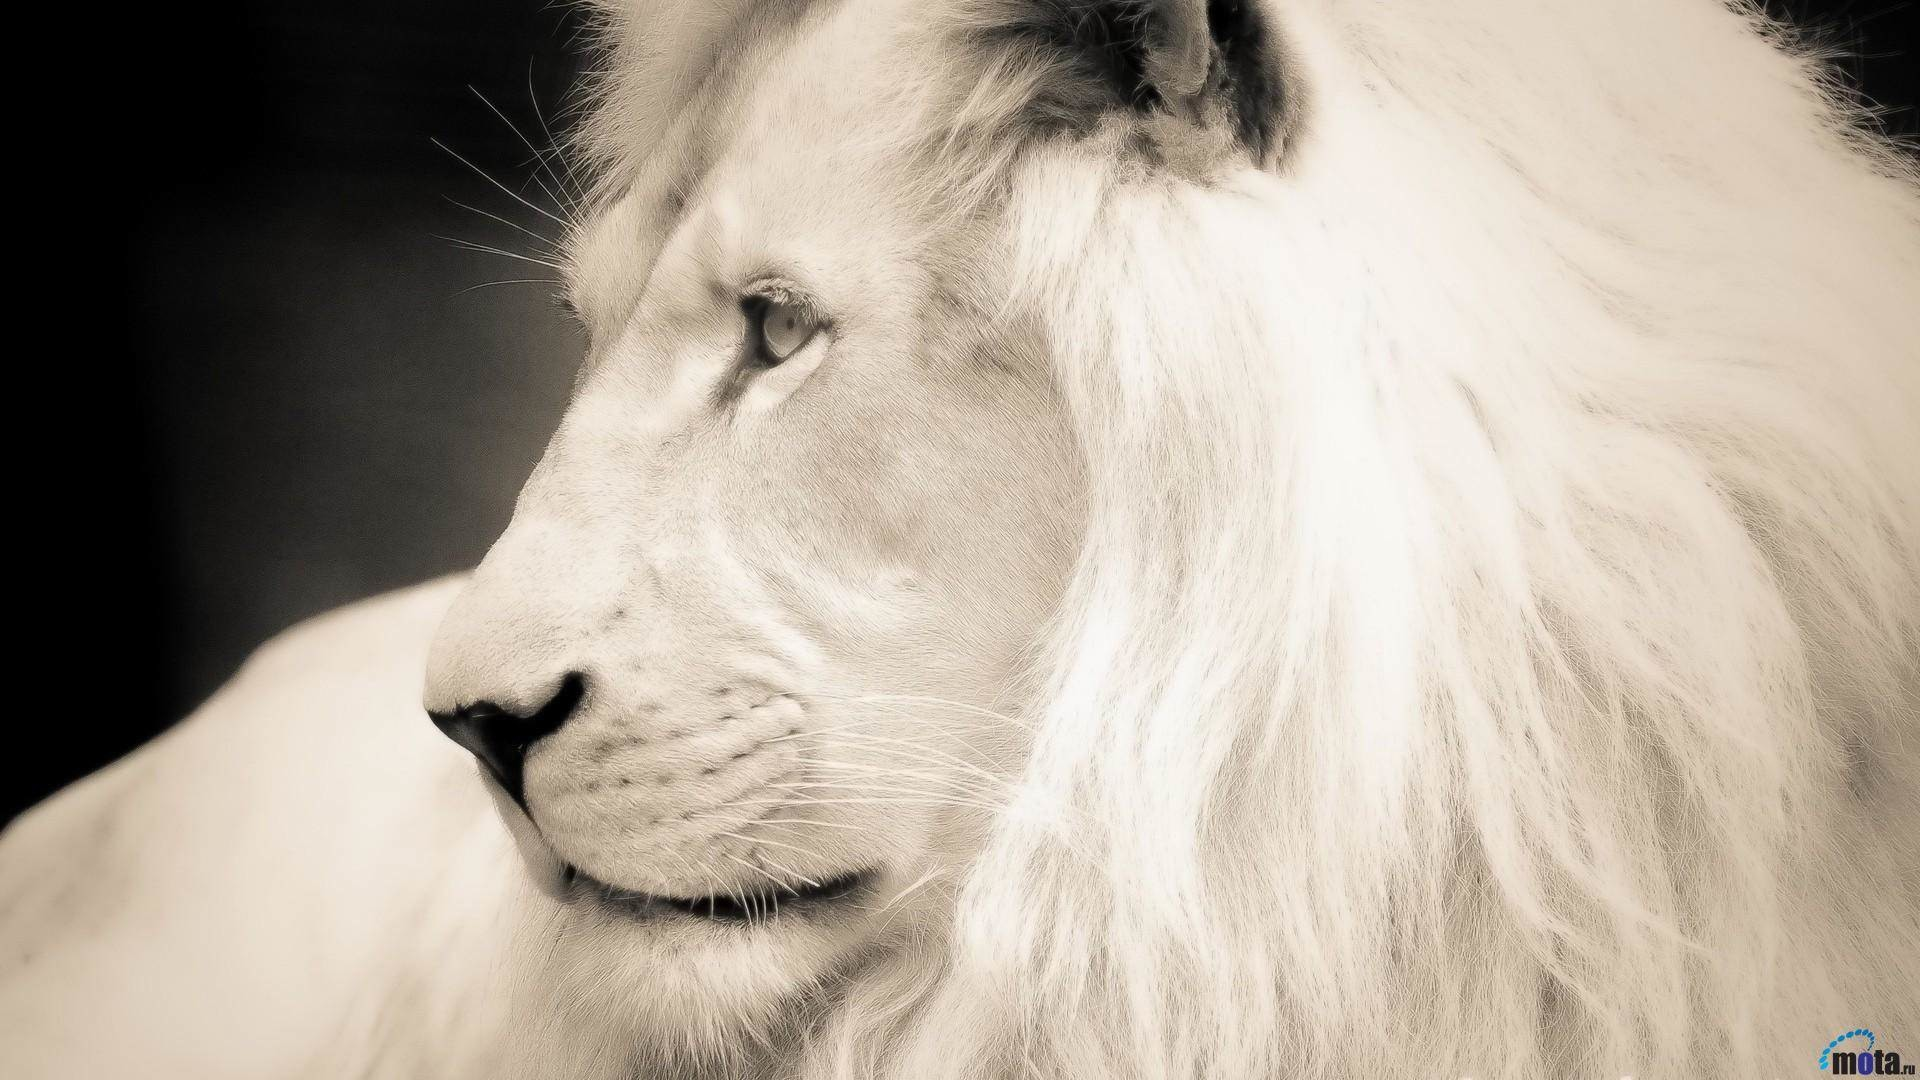 White Lion HD Wallpapers Backgrounds Wallpaper 1920×1080 White Lion Images    Adorable Wallpapers